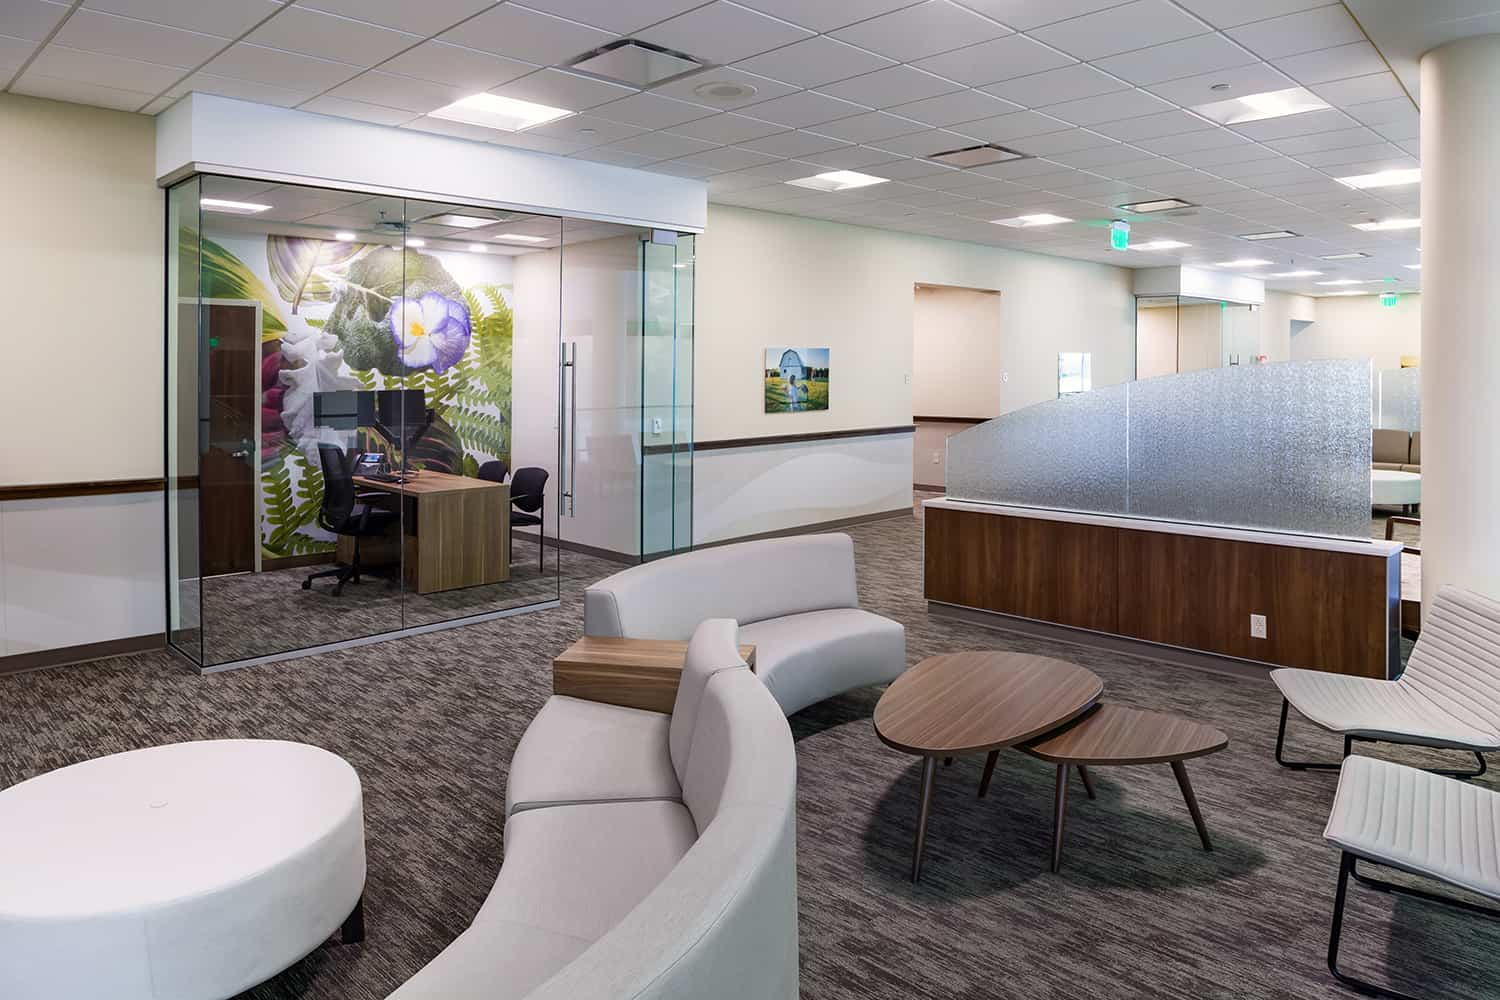 Clinic reception and waiting area with glass-walled consult room and curved seating.